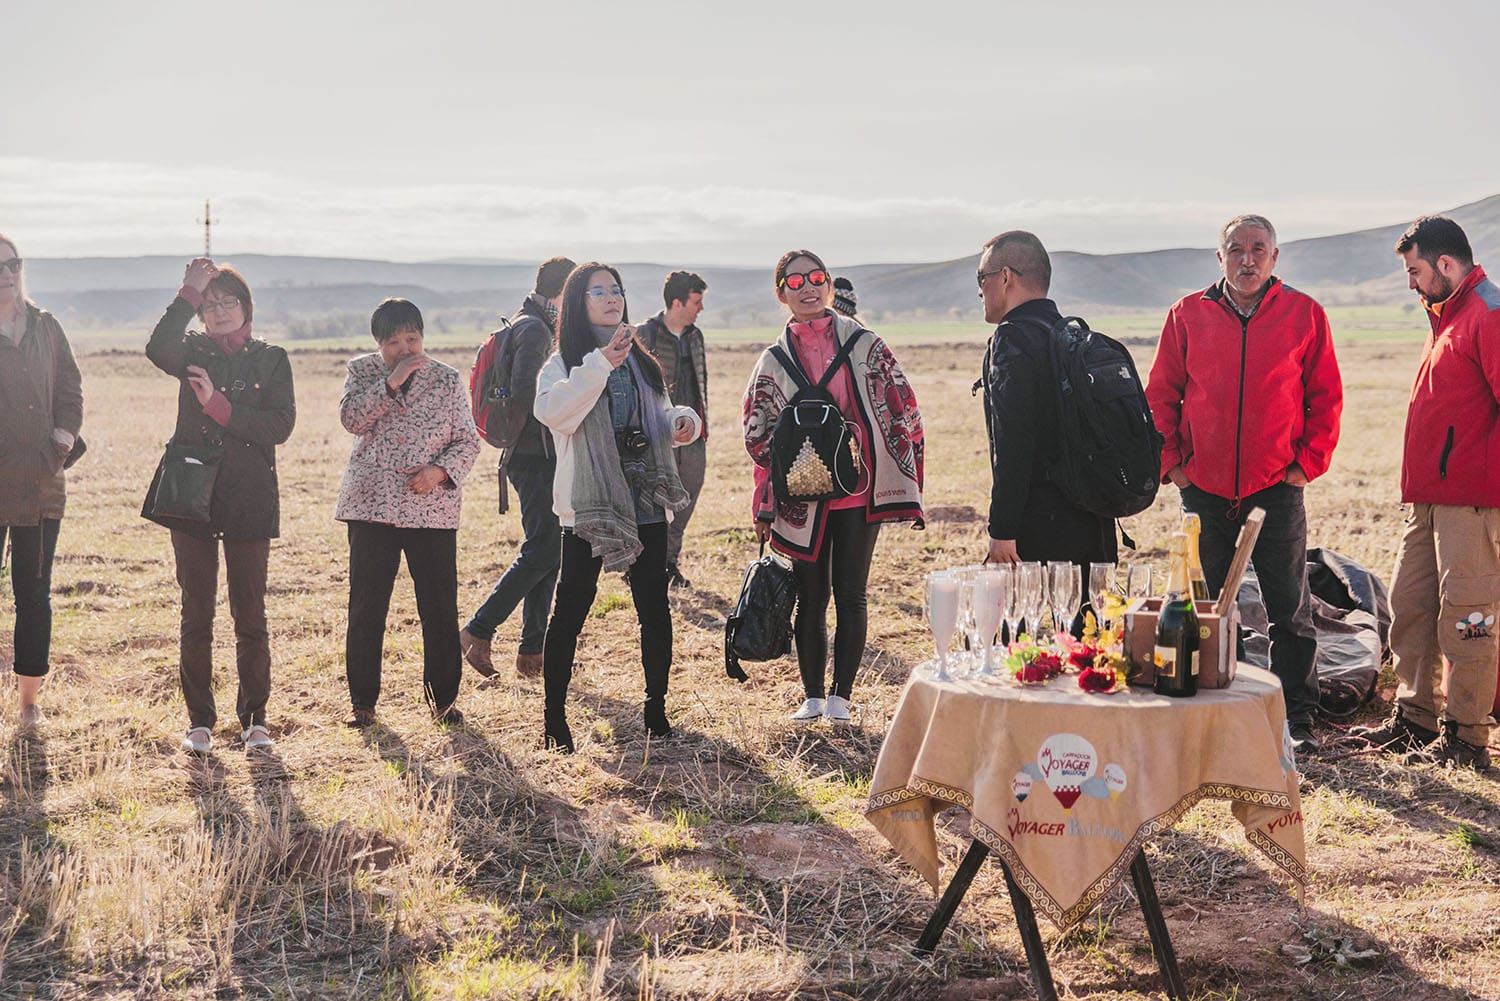 Champagne after hot air balloon tour in Cappadocia